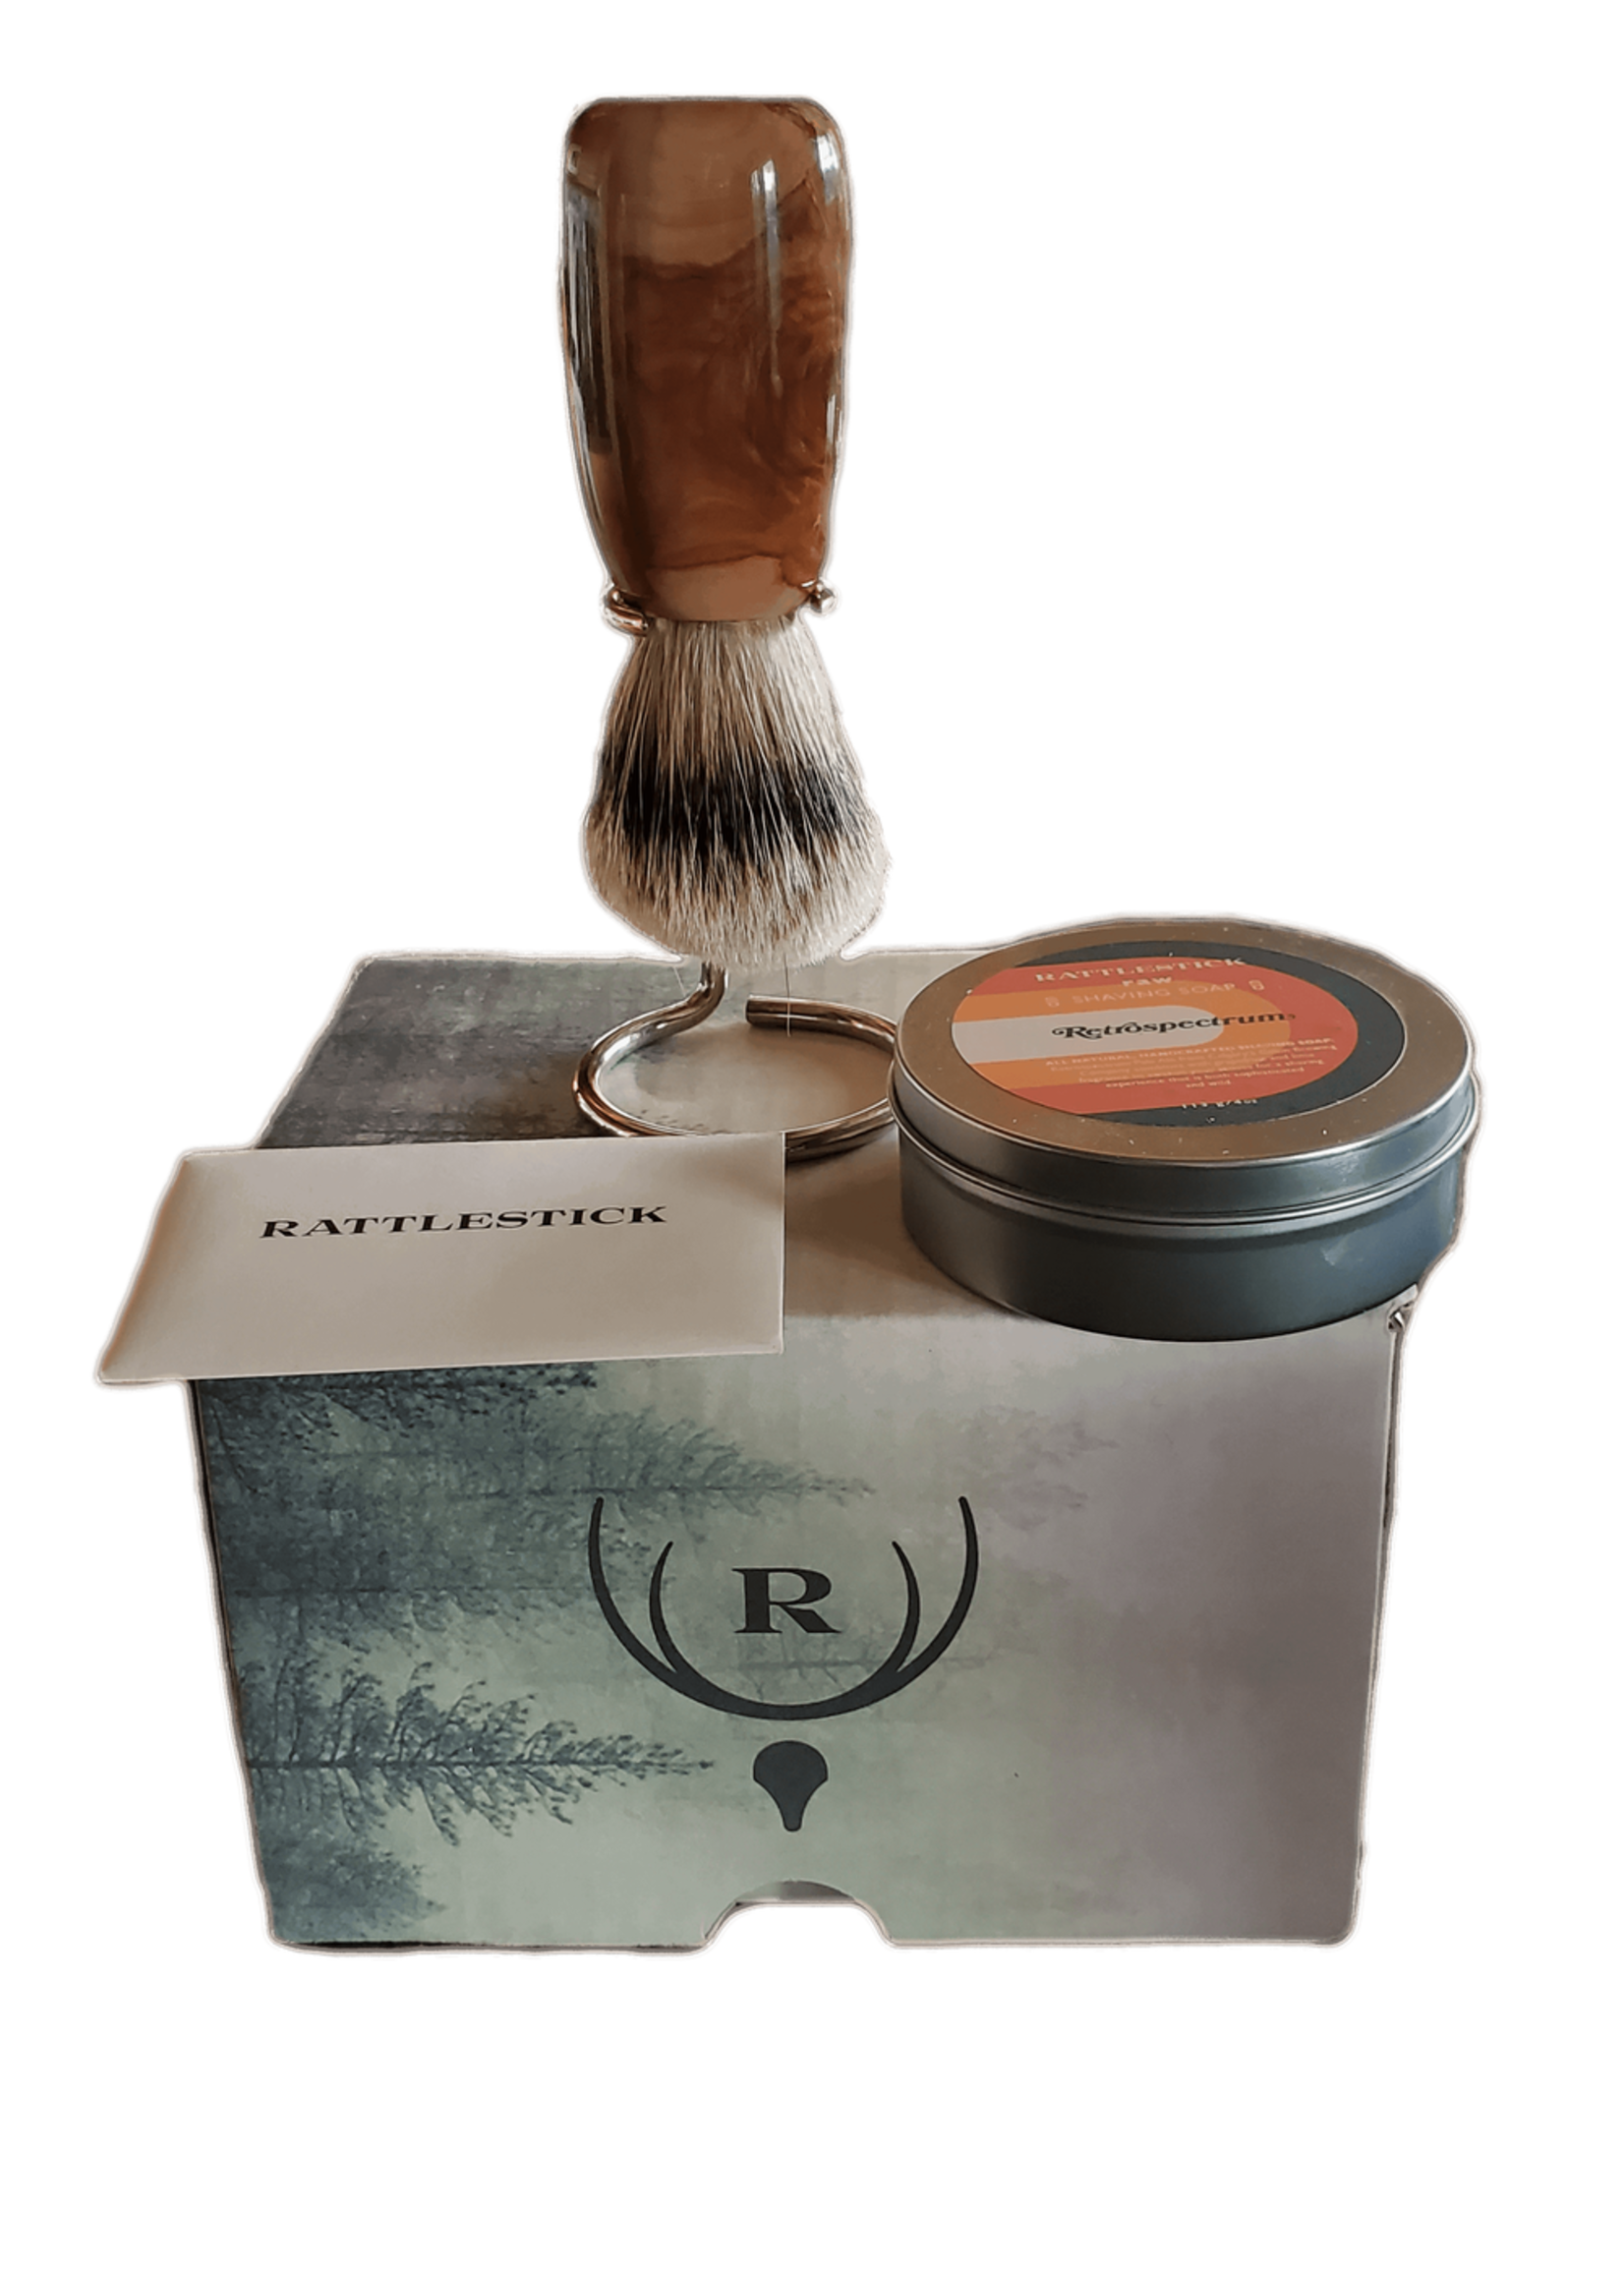 Rattlestick Rattlestick Discover the Ritual - Brush, Stand, Soap